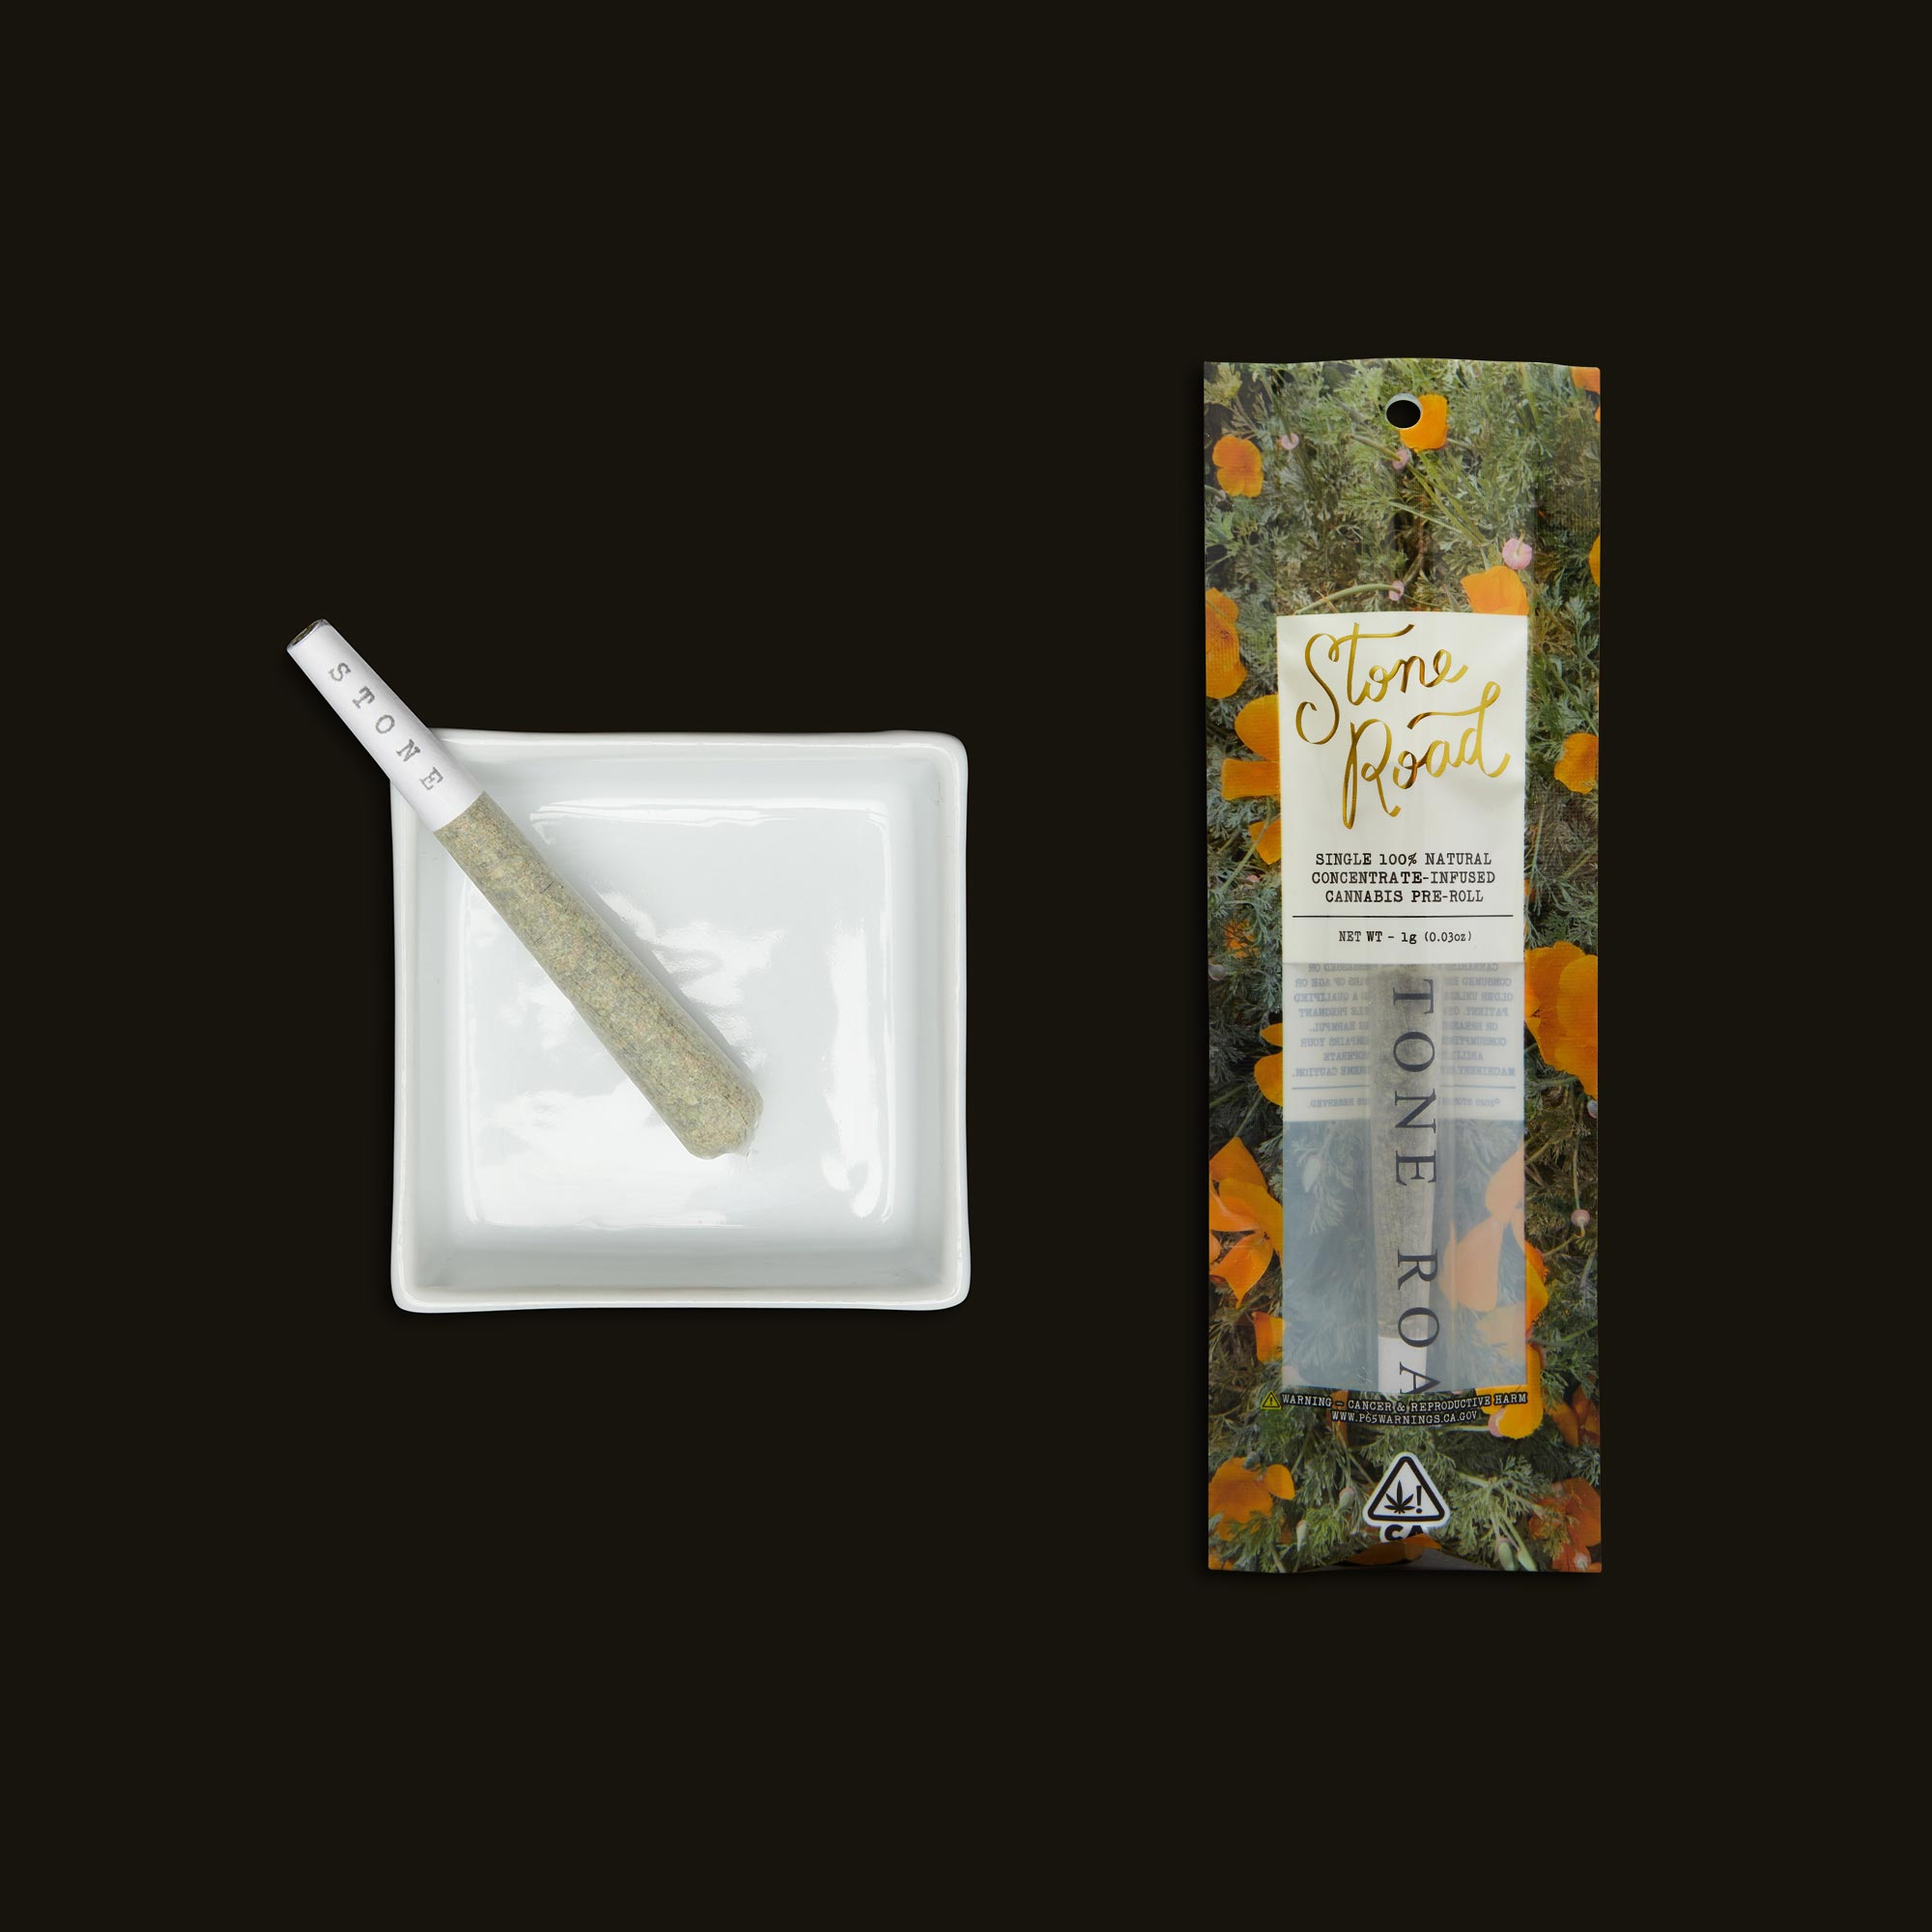 Stone Road Gorilla Glue #4 Infused Pre-Roll Pack